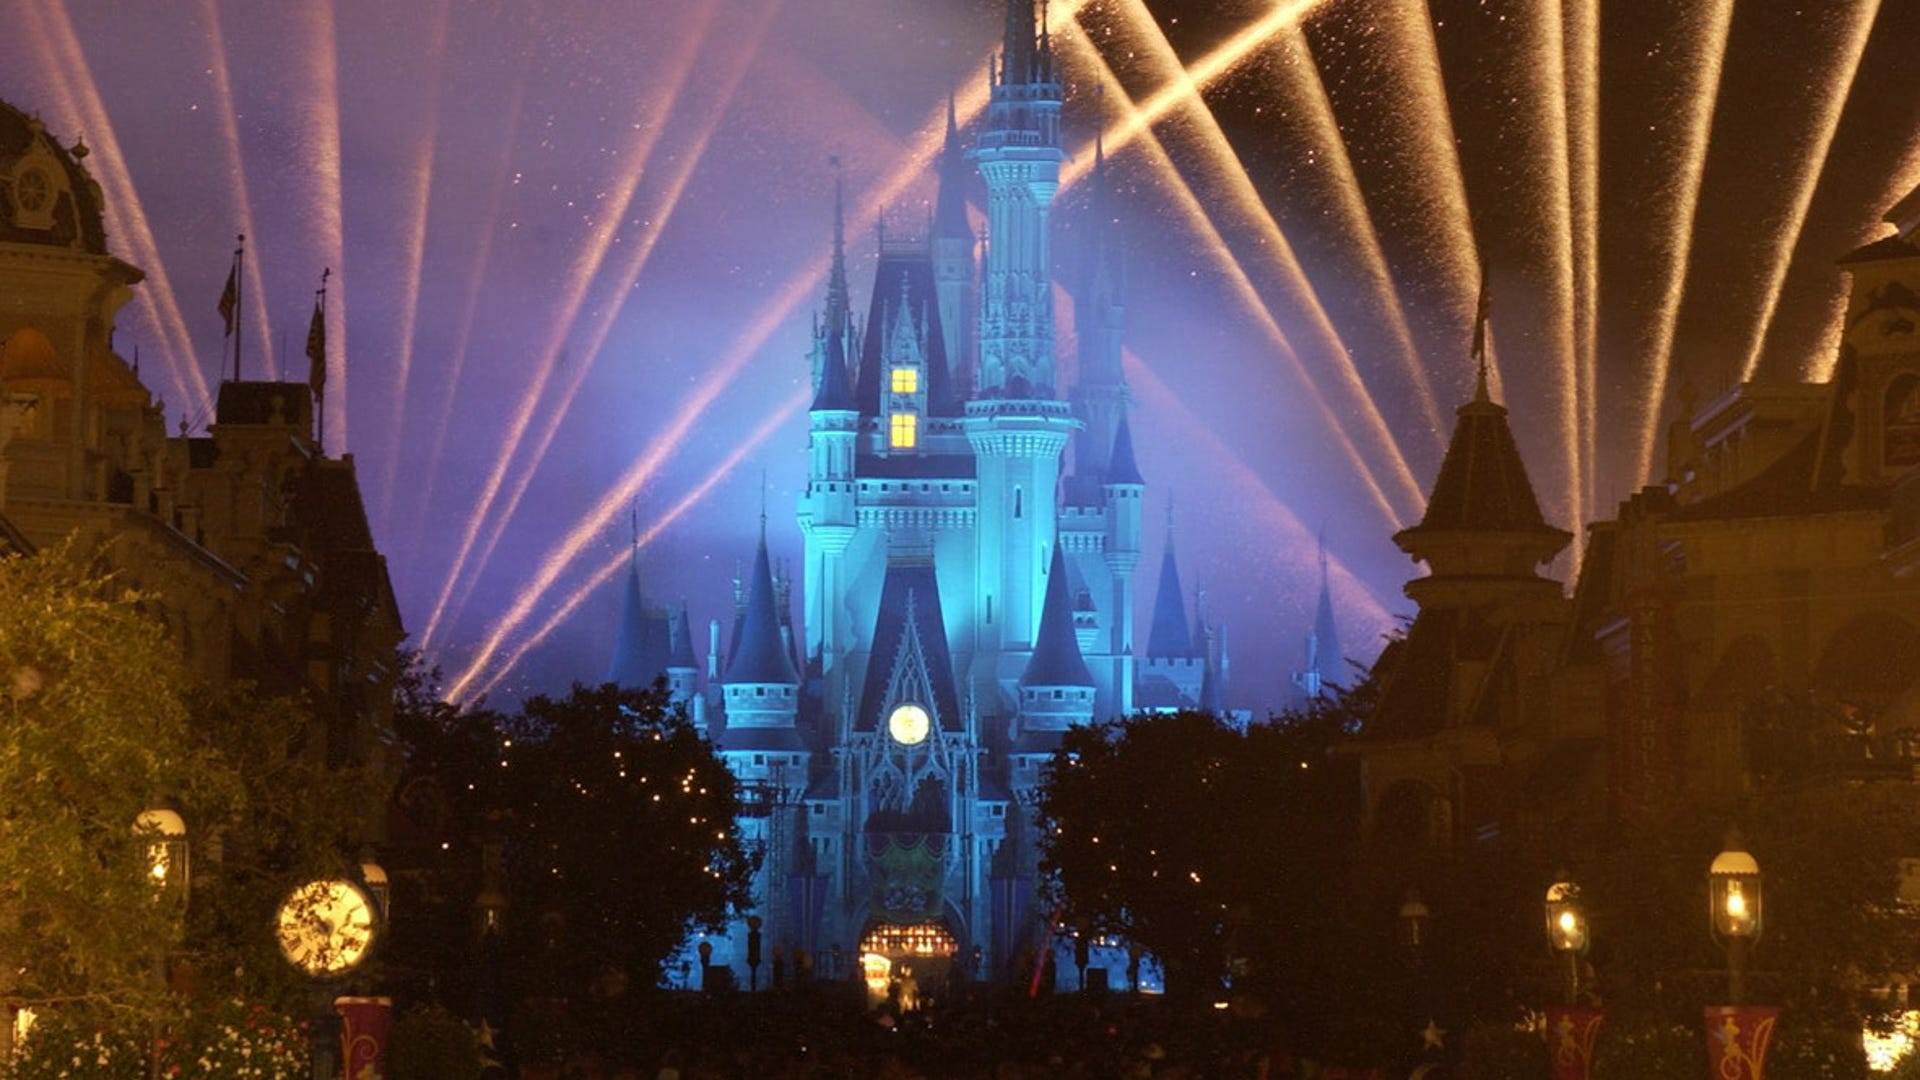 Slide 3 of 8: Lights illuminate Cinderella Castle.